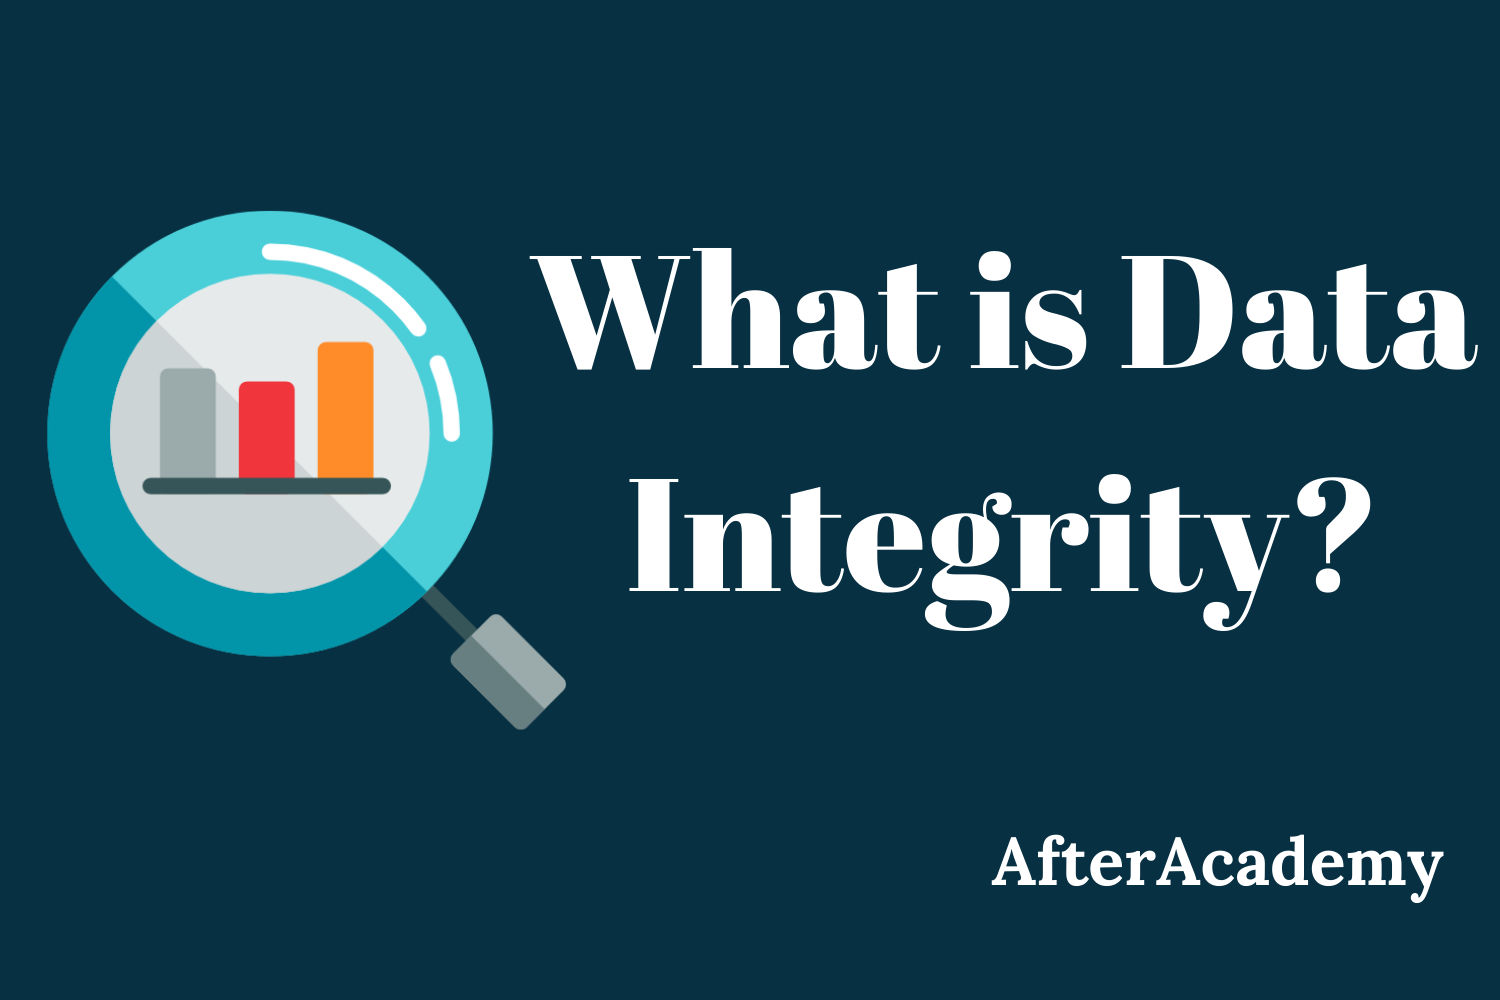 What is Data Integrity?